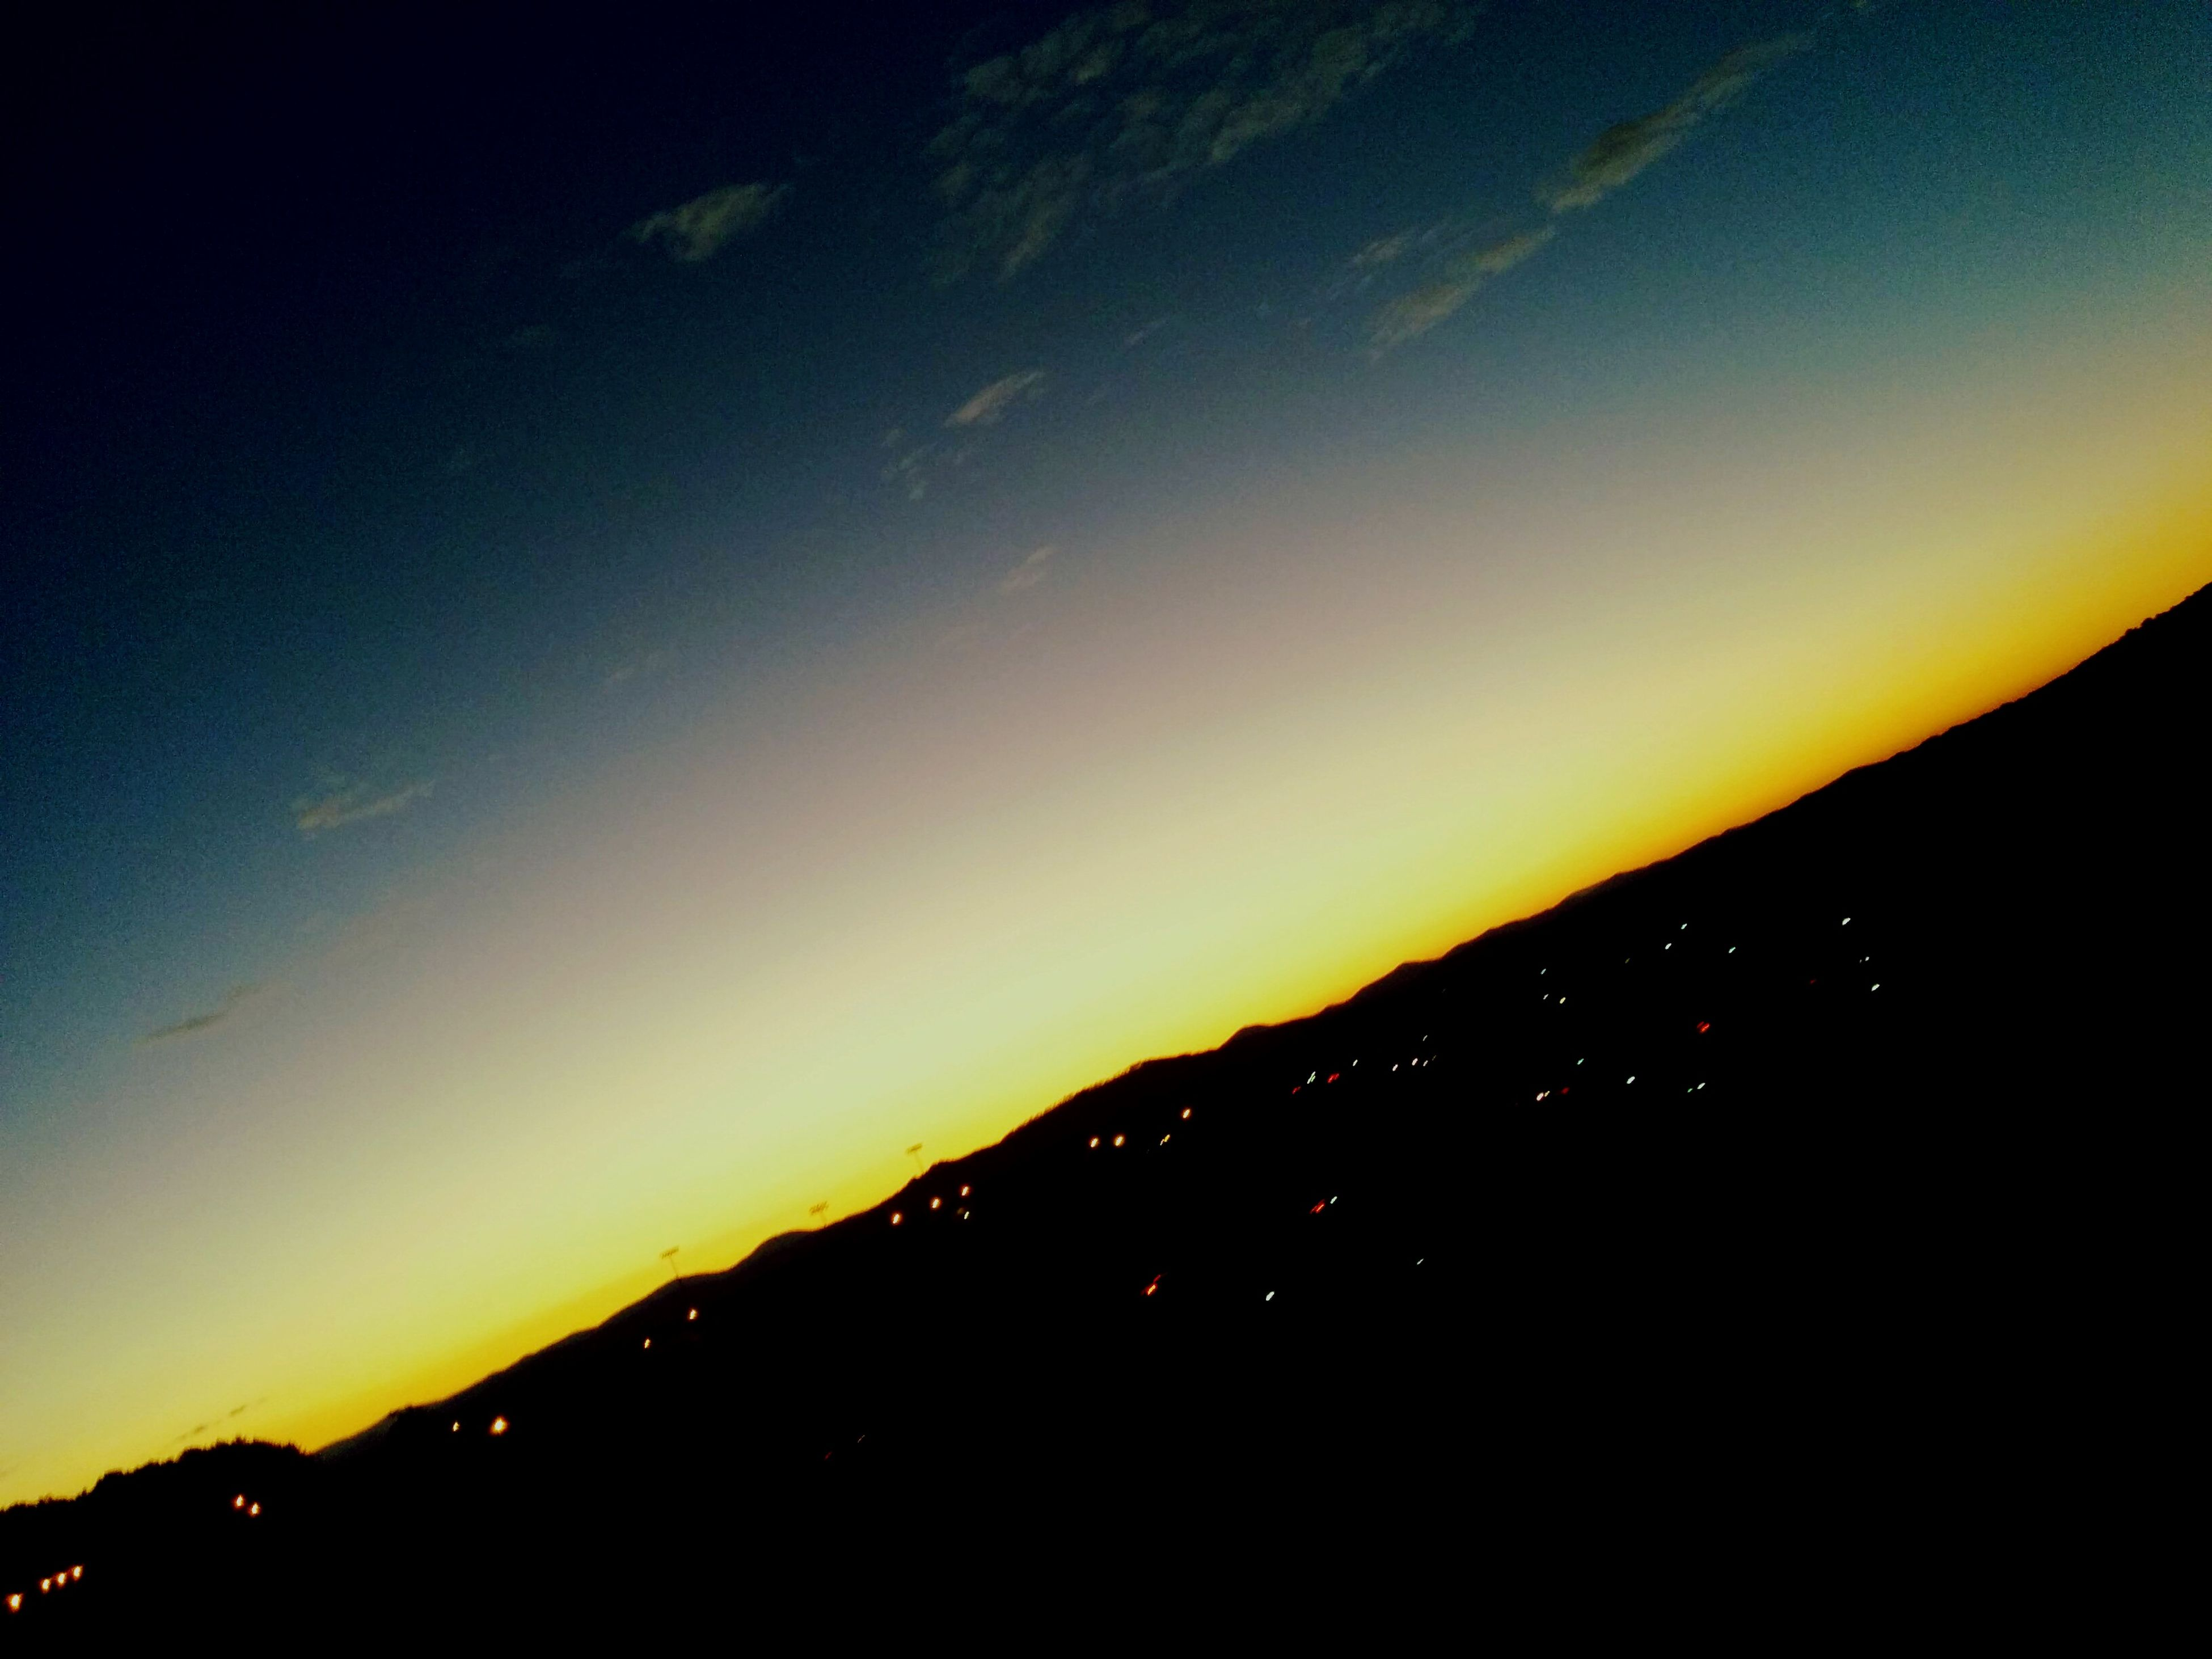 sunset, scenics, tranquil scene, silhouette, beauty in nature, tranquility, sky, orange color, idyllic, night, nature, dark, illuminated, copy space, landscape, dusk, yellow, outdoors, moon, no people